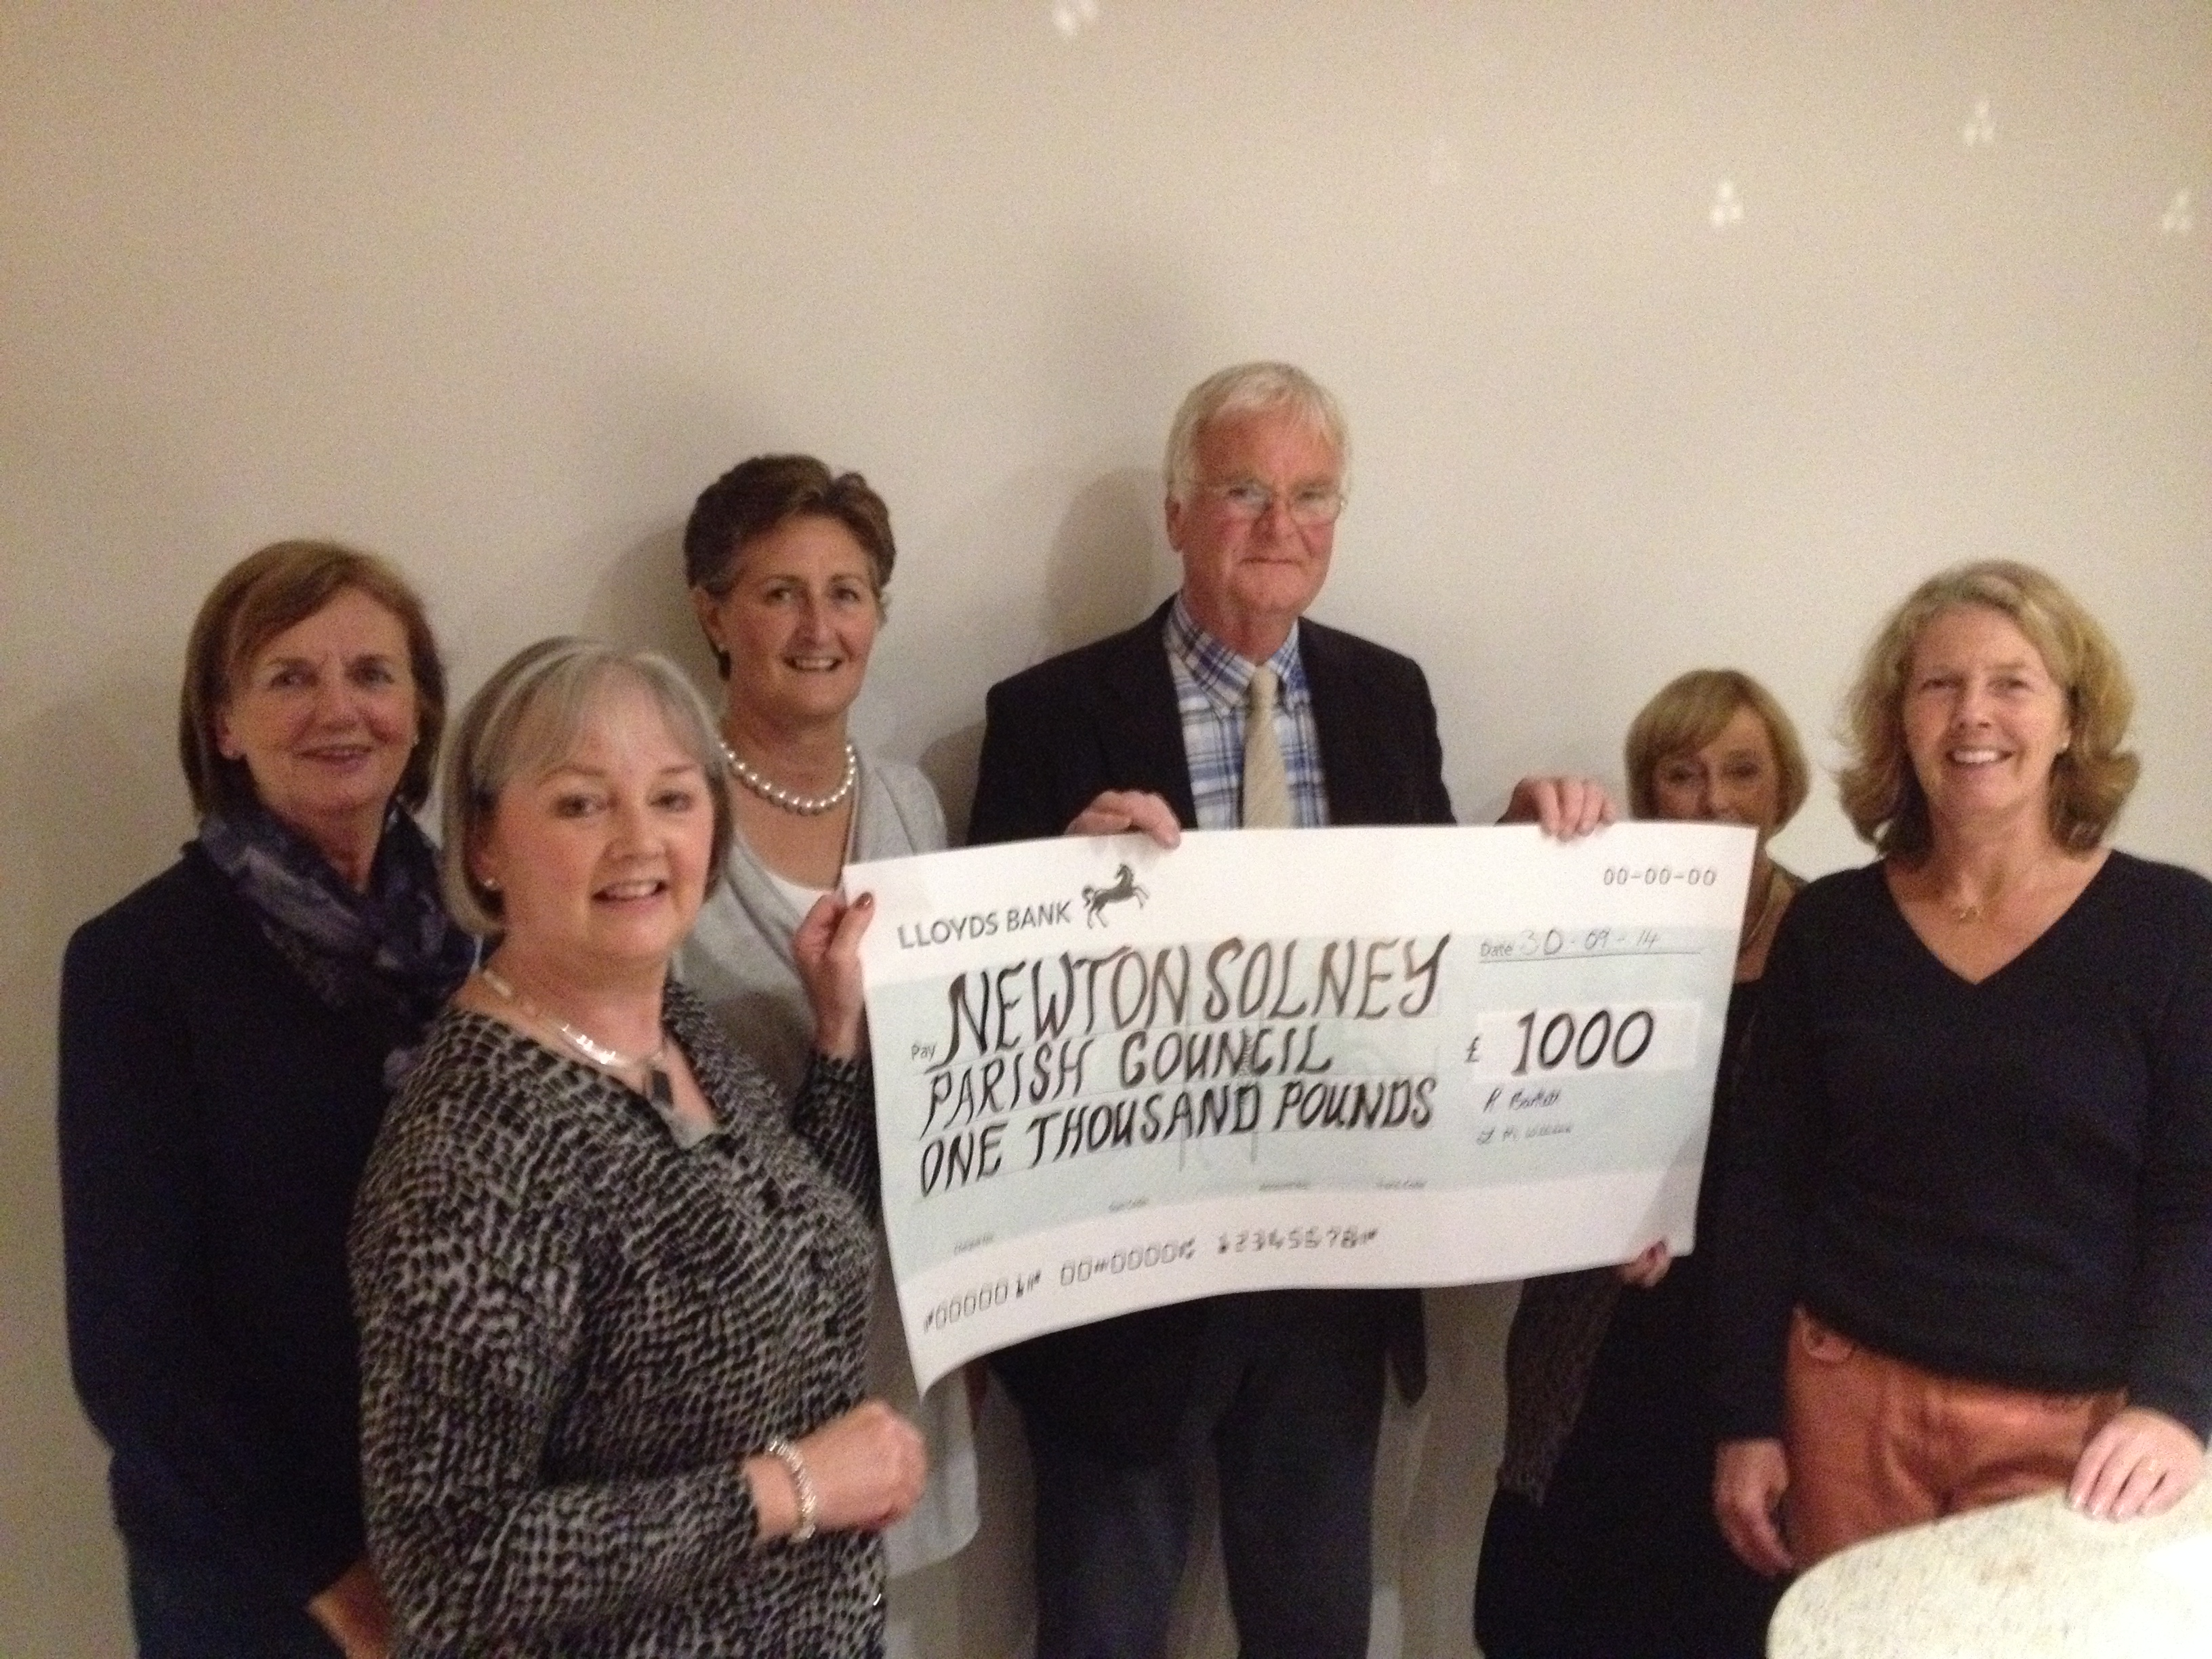 Members of the WI present a cheque to Fred Hill, chairman of Newton Solney Parish Council for £1,000.